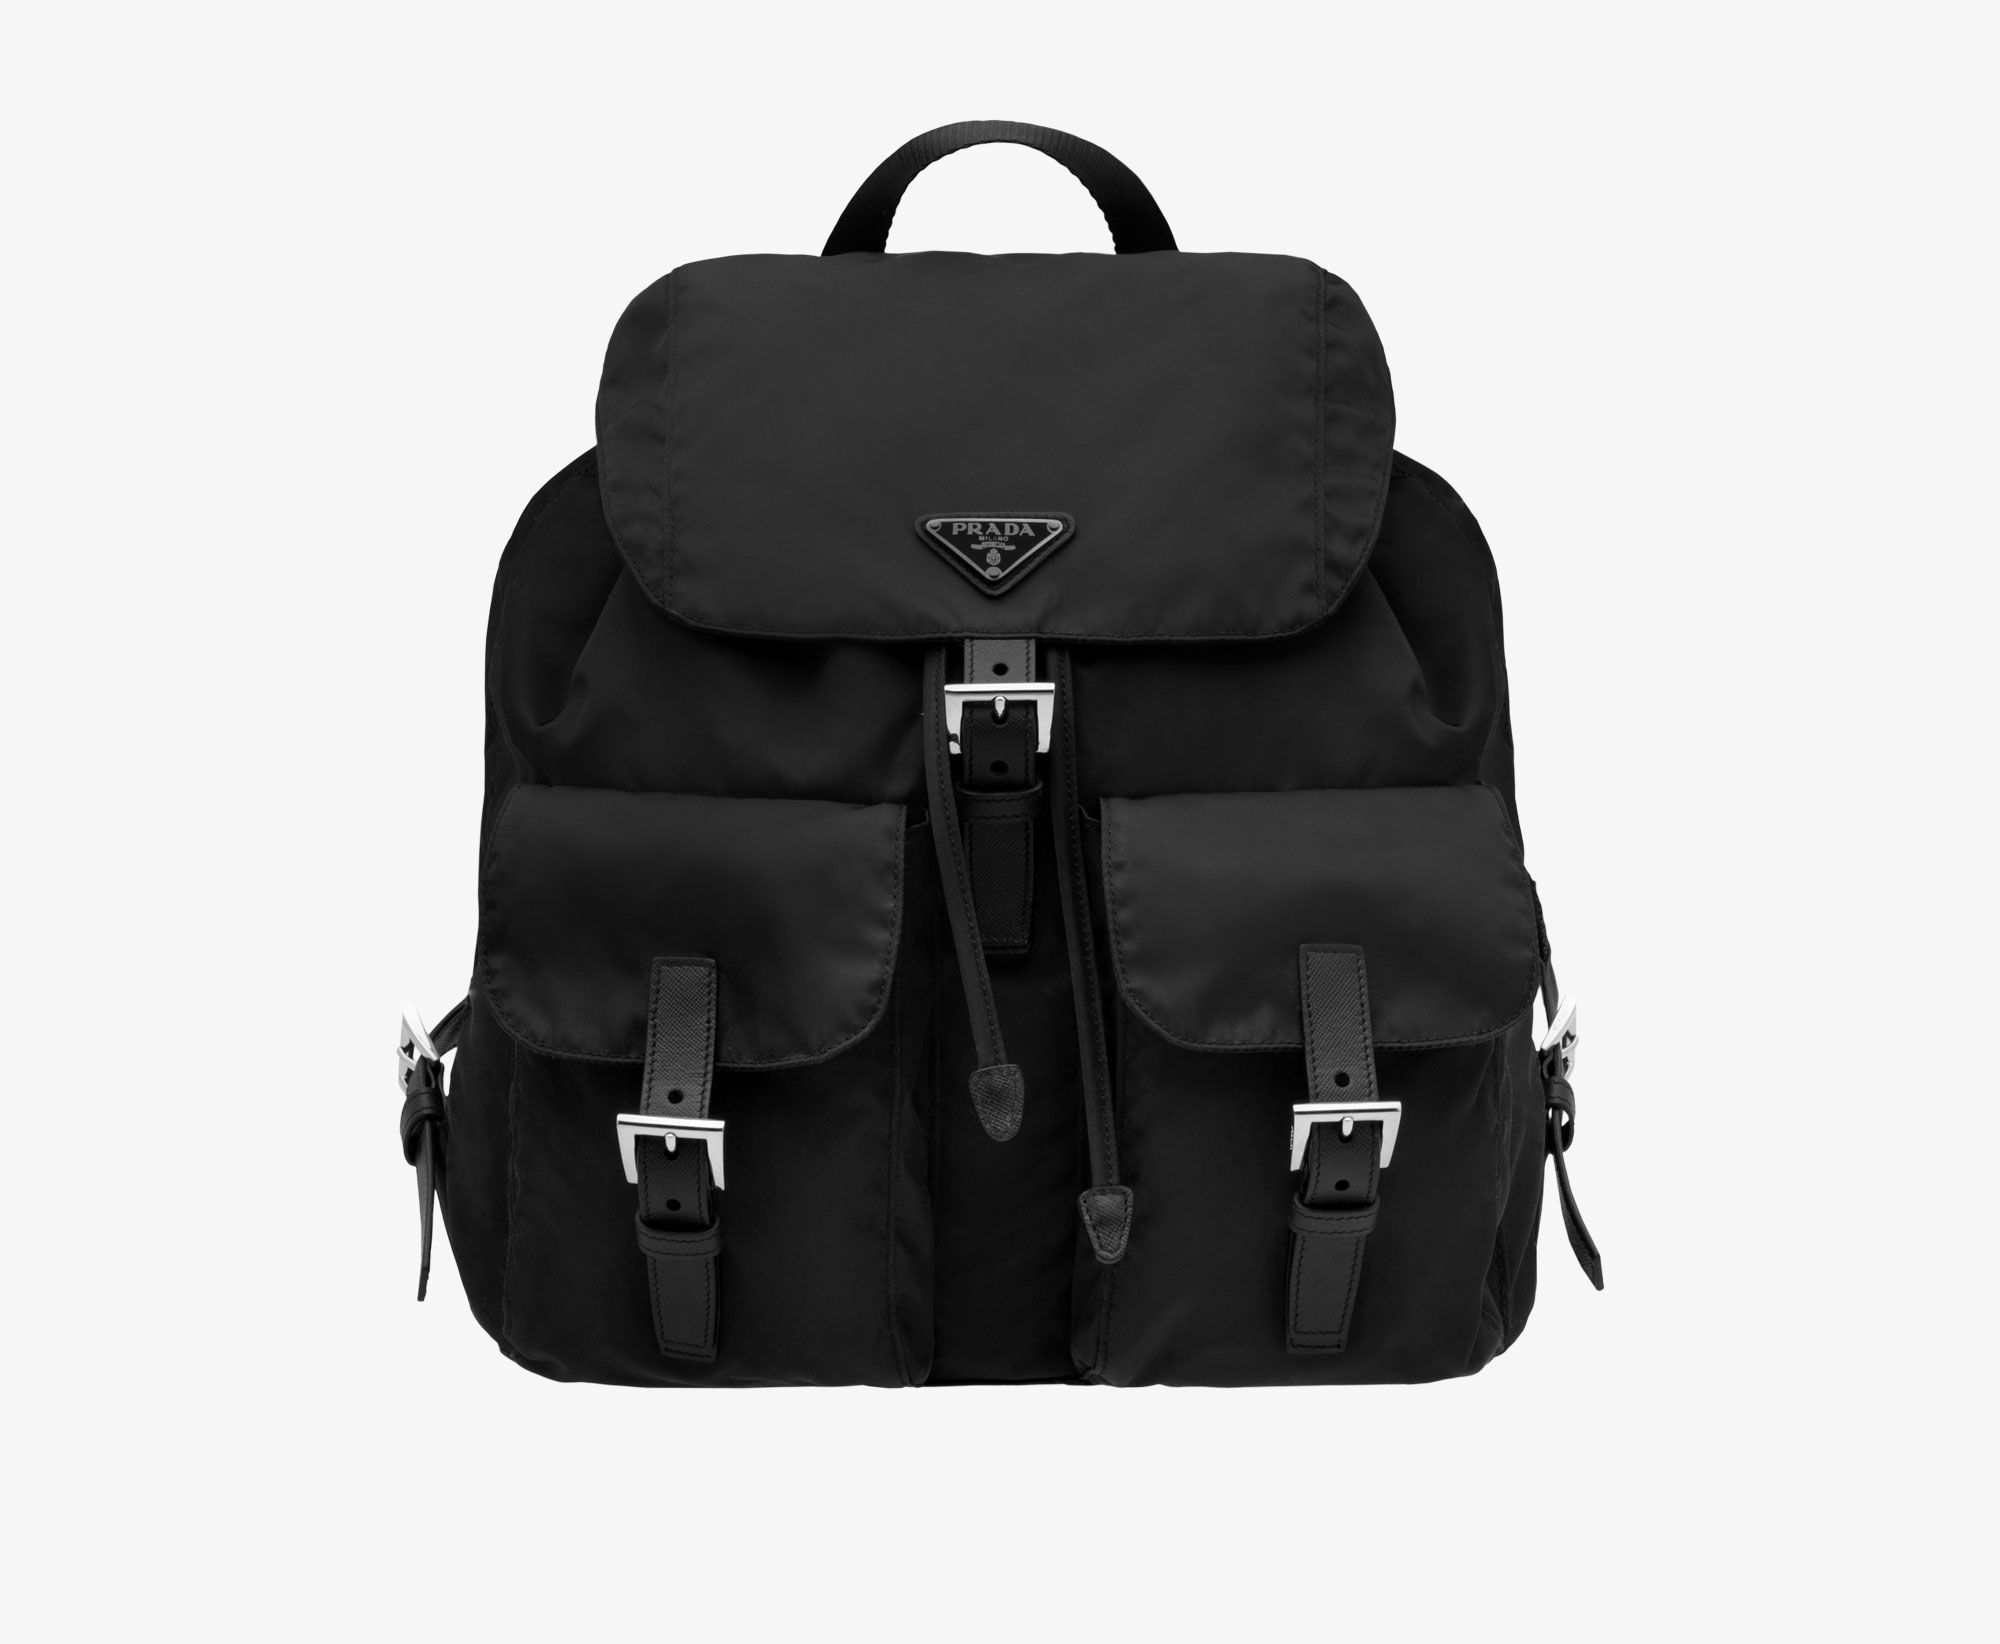 937443450091e5 Prada Vela Leather Backpack. I have had this bag for 10 + years. Still a  favorite of mine. | <3 Purses<3 They say you never forget your first LOVE  <3 ...